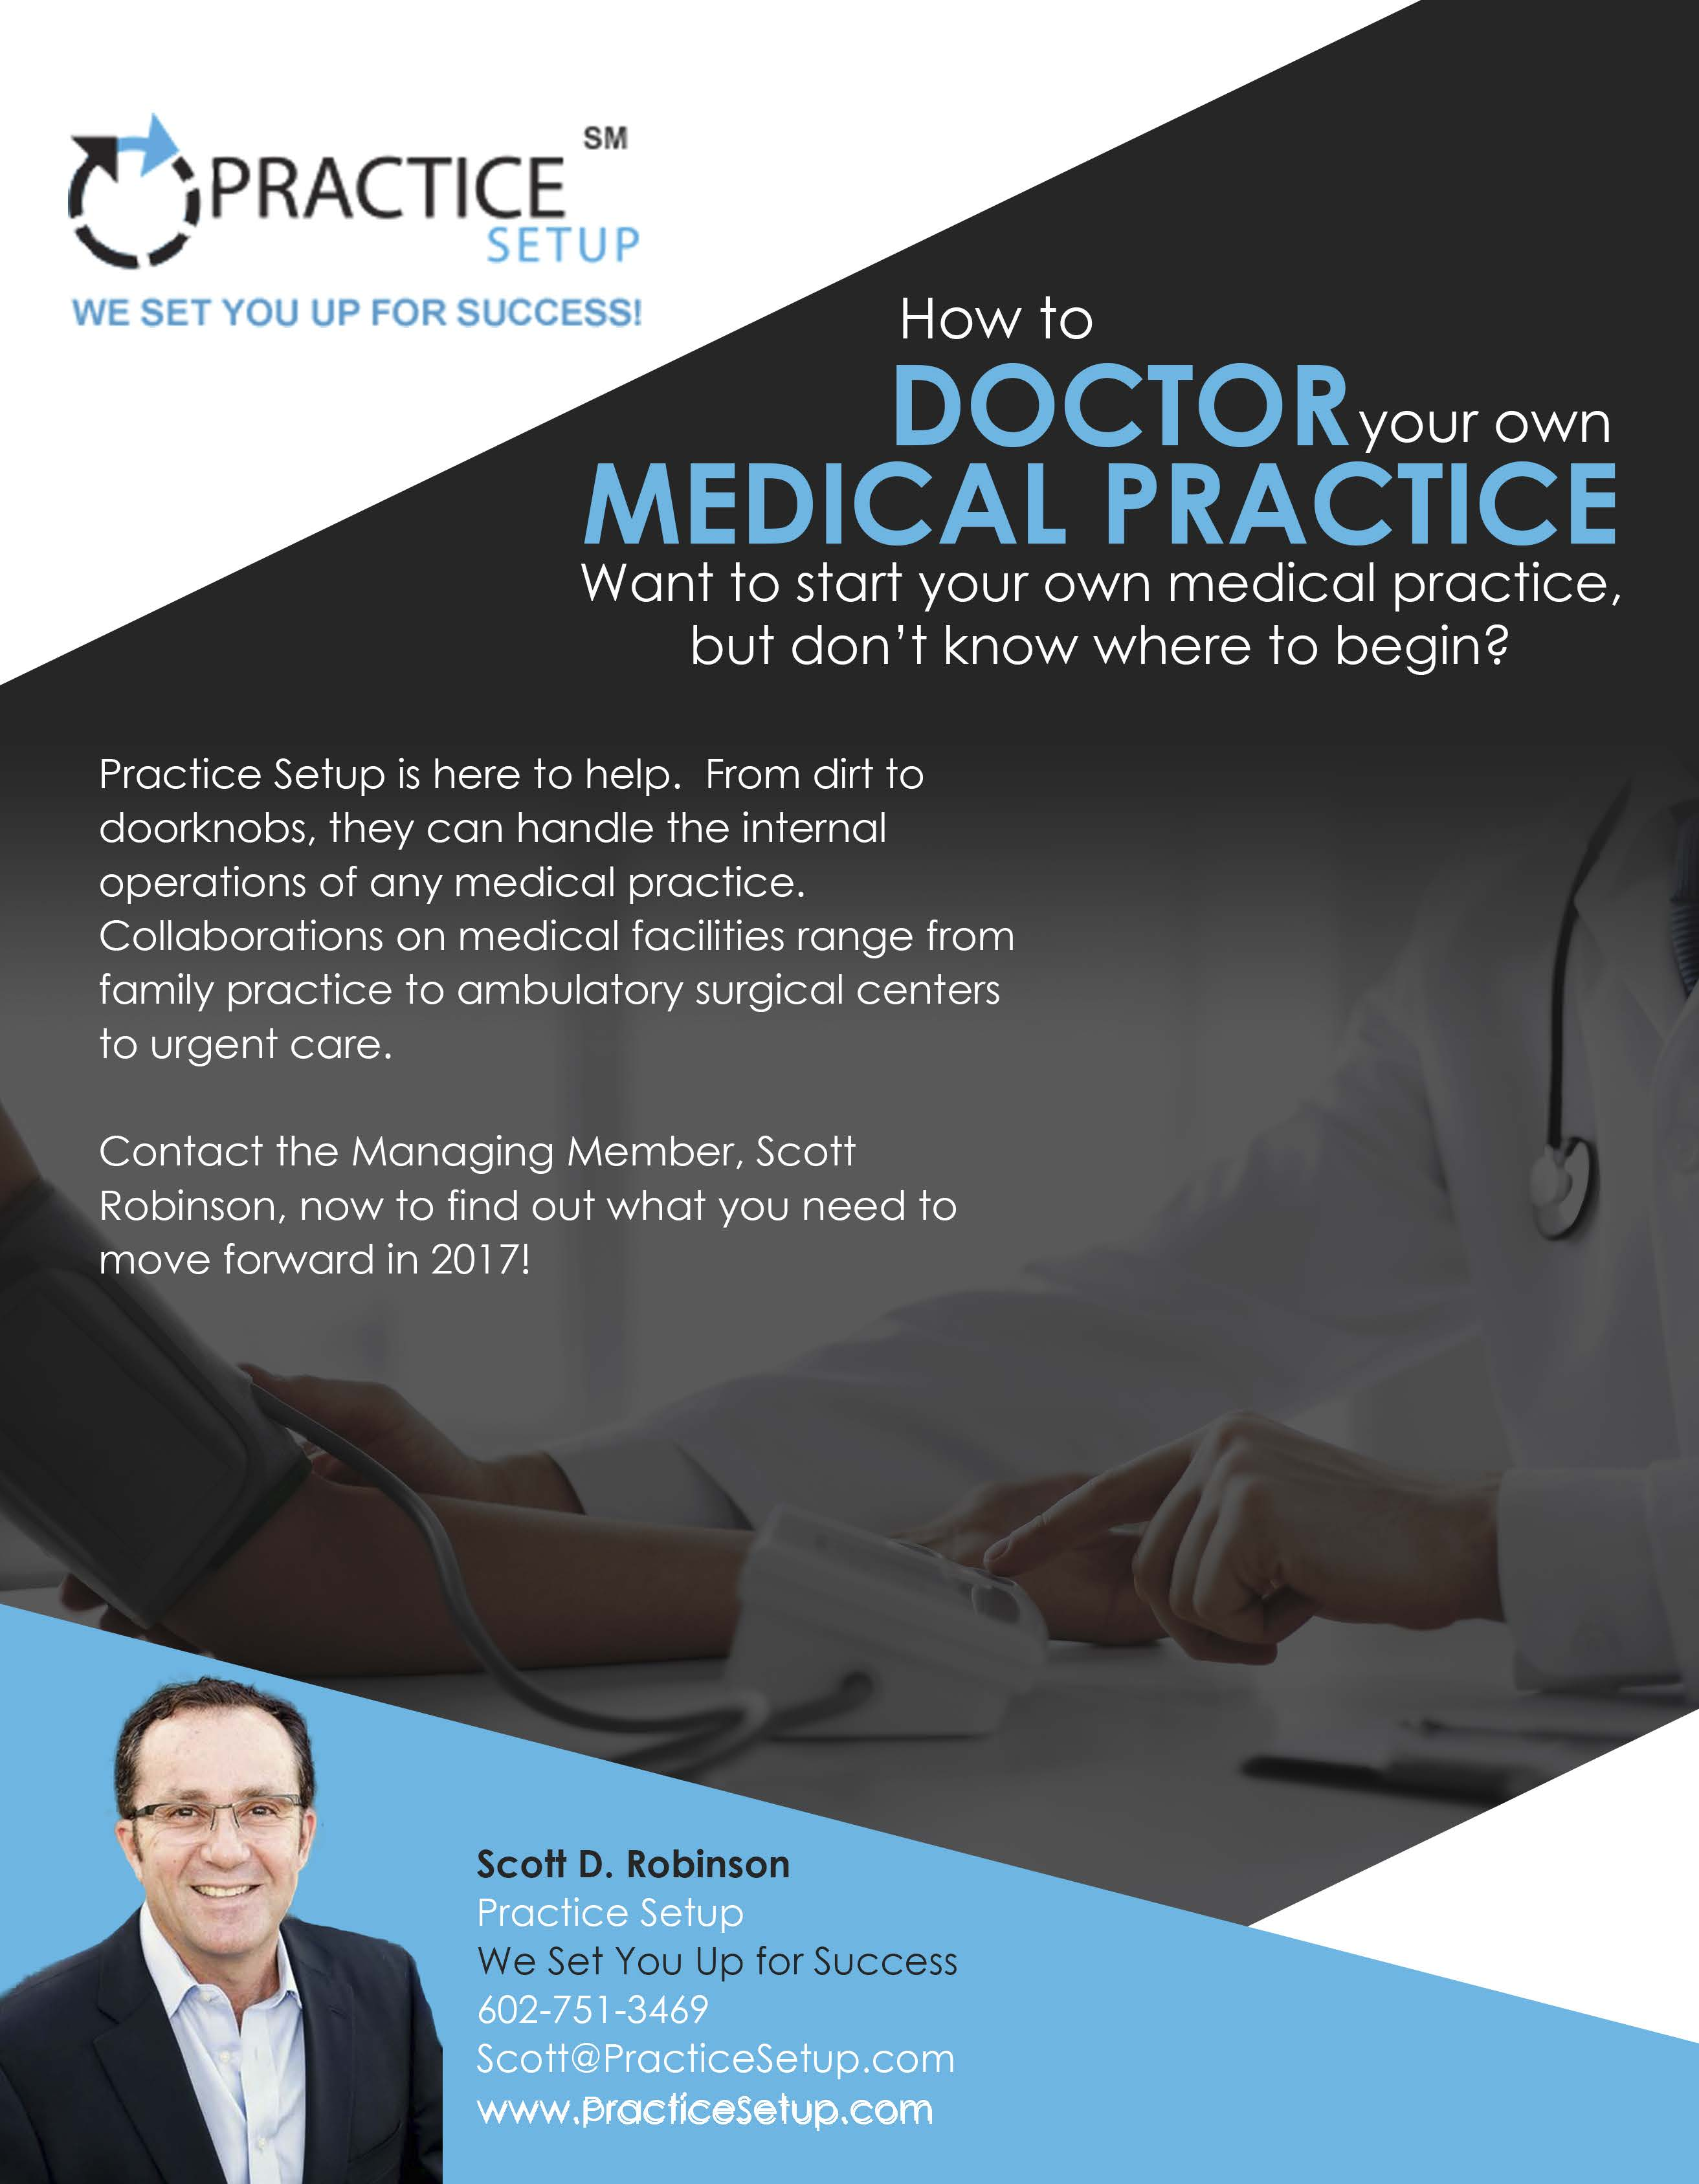 How to Doctor Your Own Medical Practice